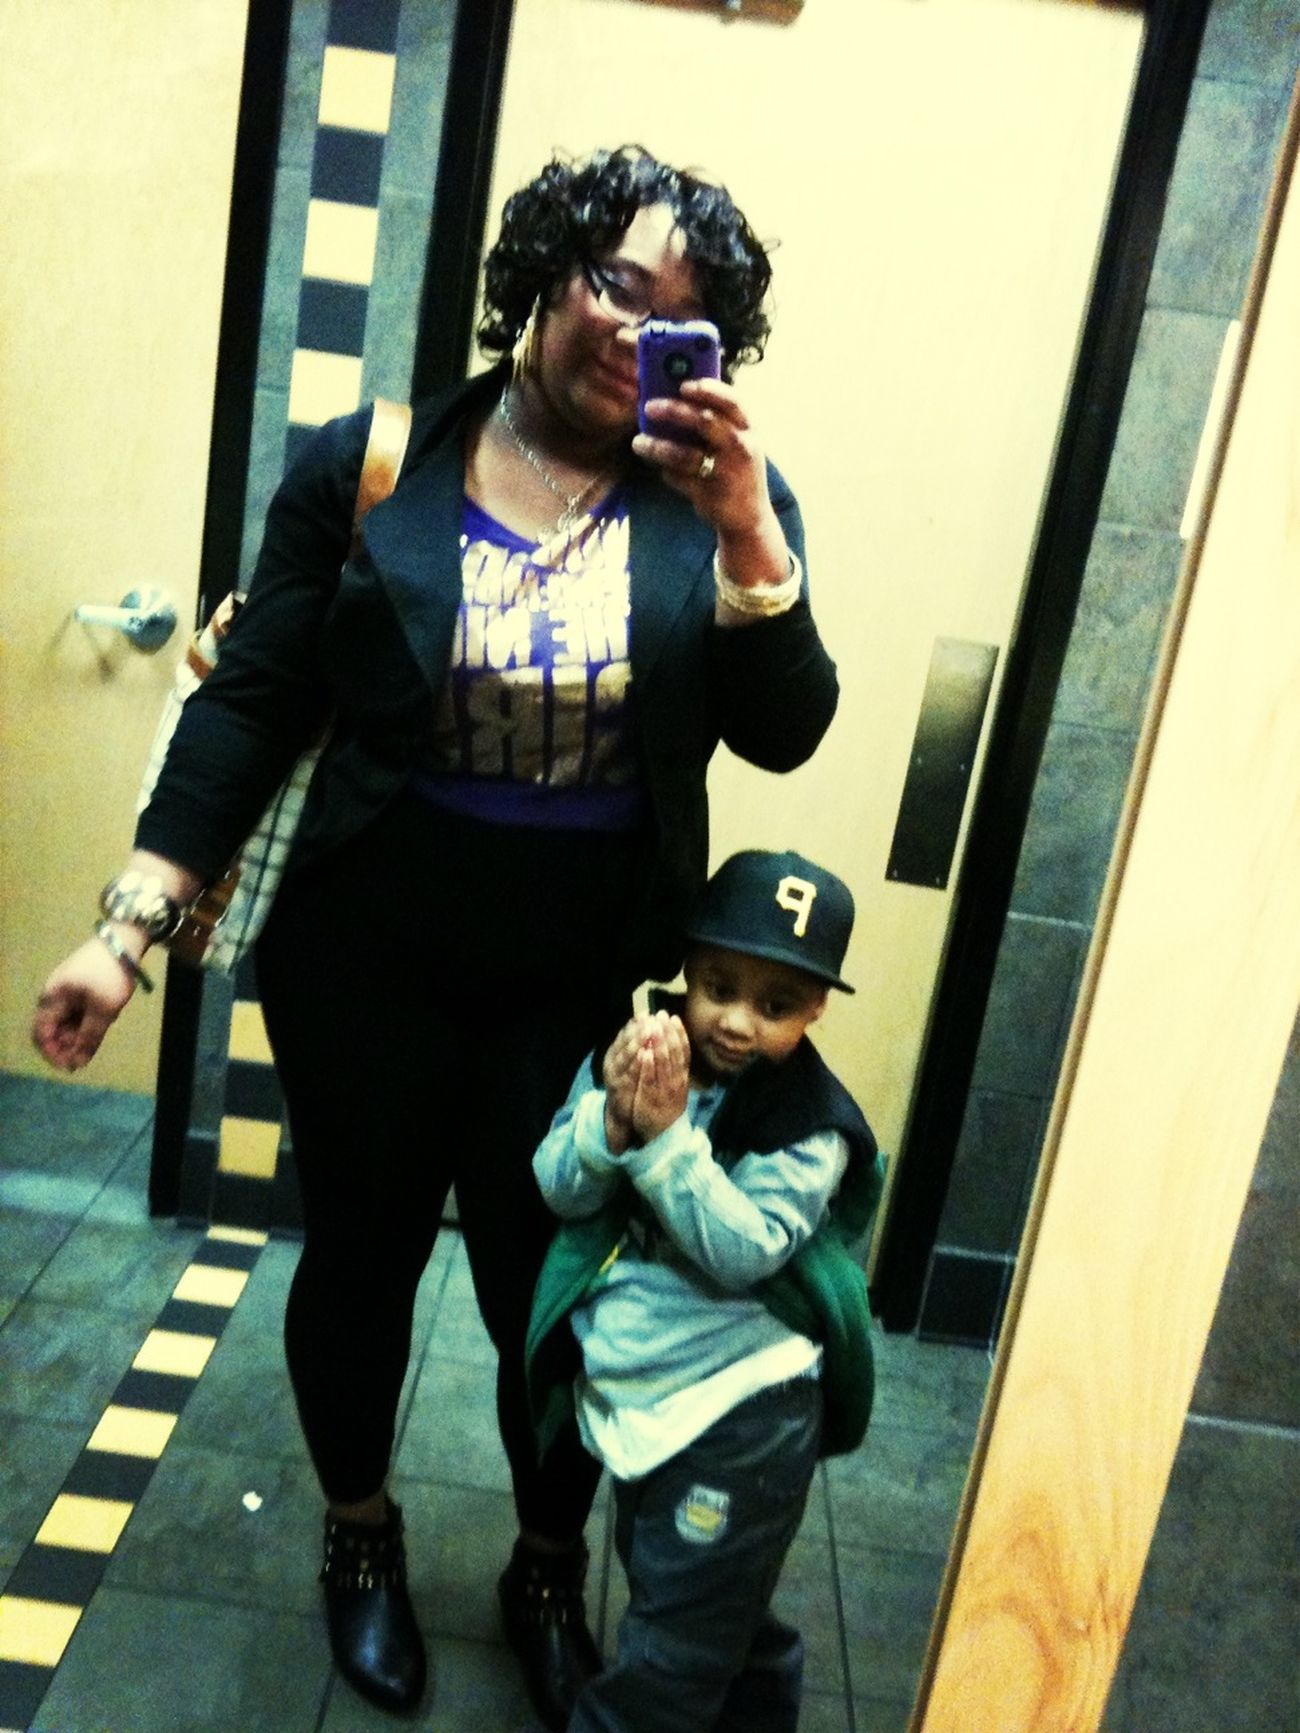 Me And My Stink